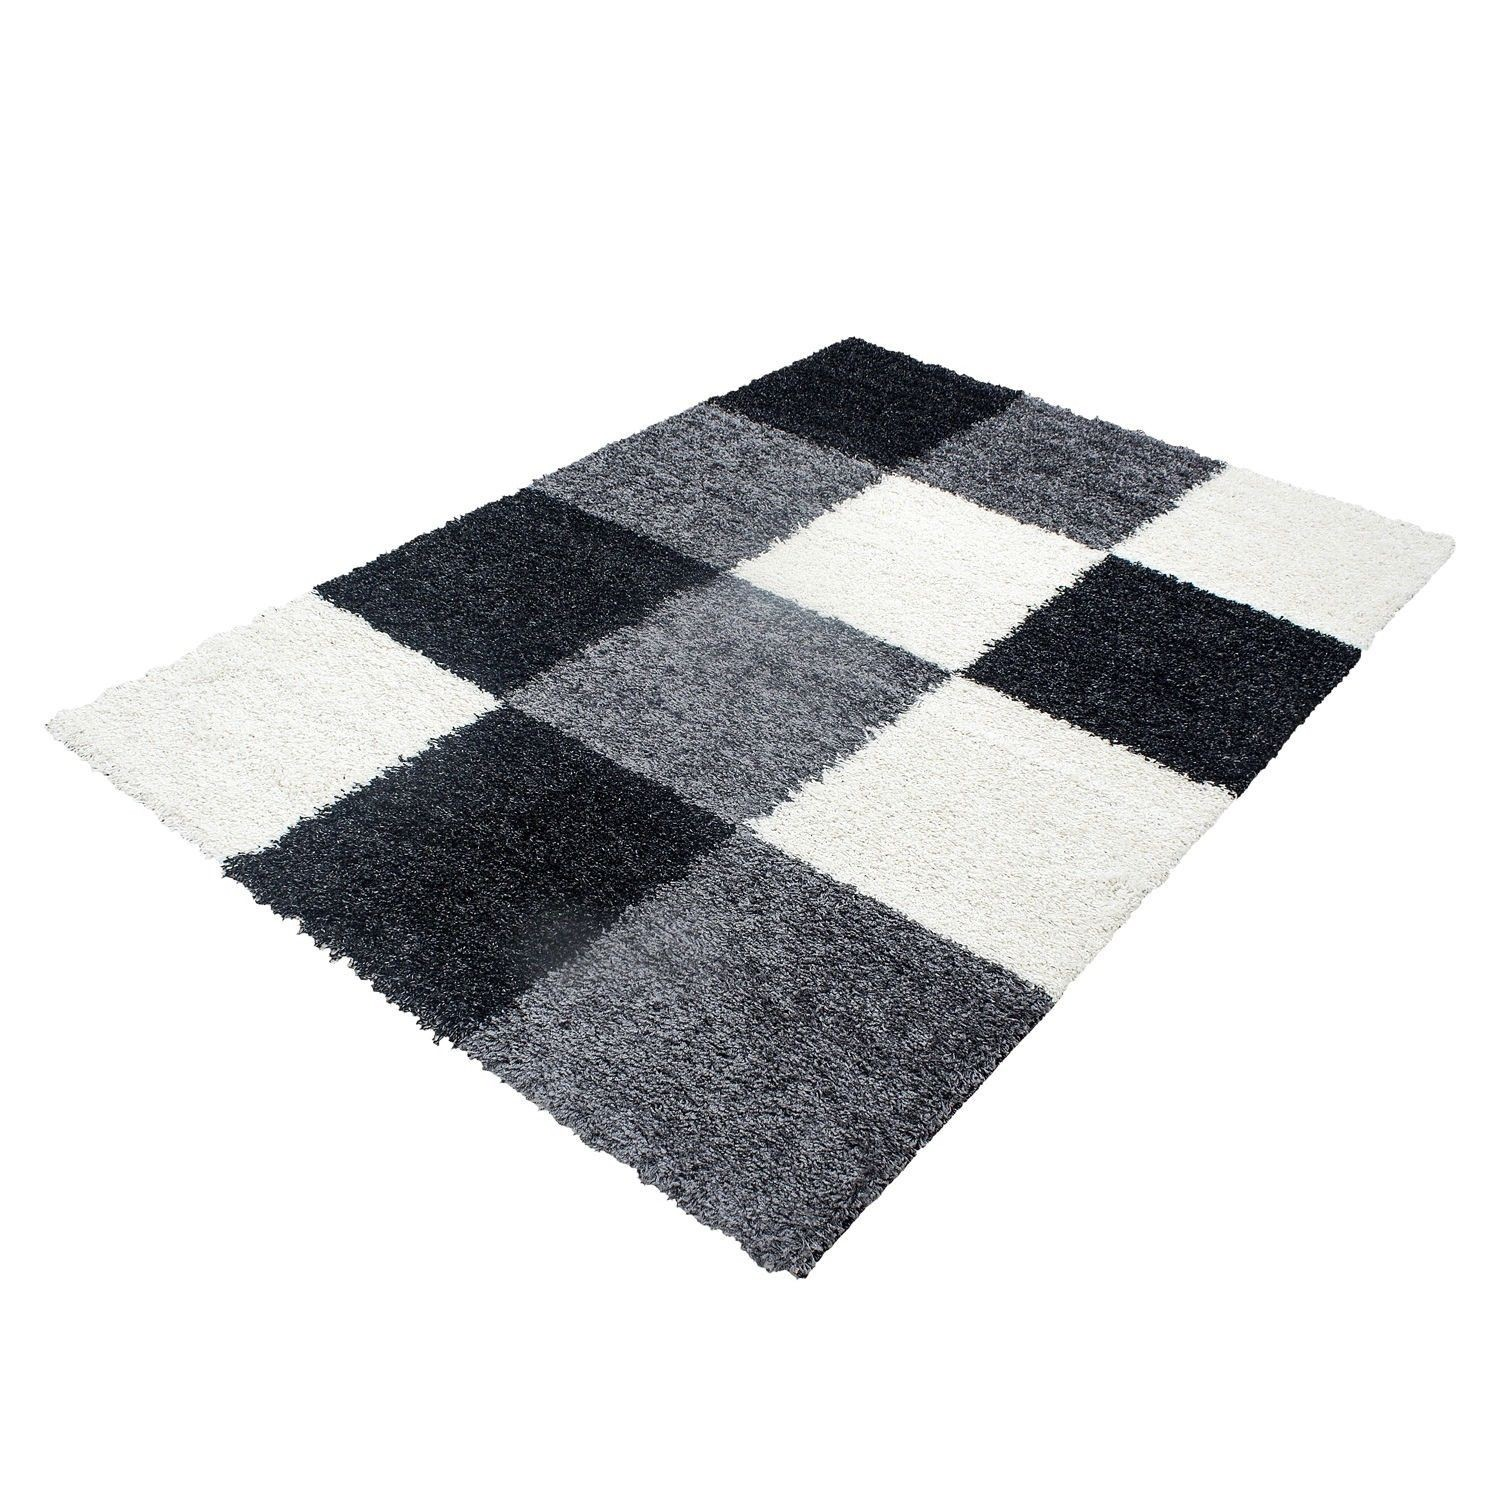 tapis shaggy noir pas cher 28 images tapis shaggy longues m 232 ches gris hautes tapis. Black Bedroom Furniture Sets. Home Design Ideas